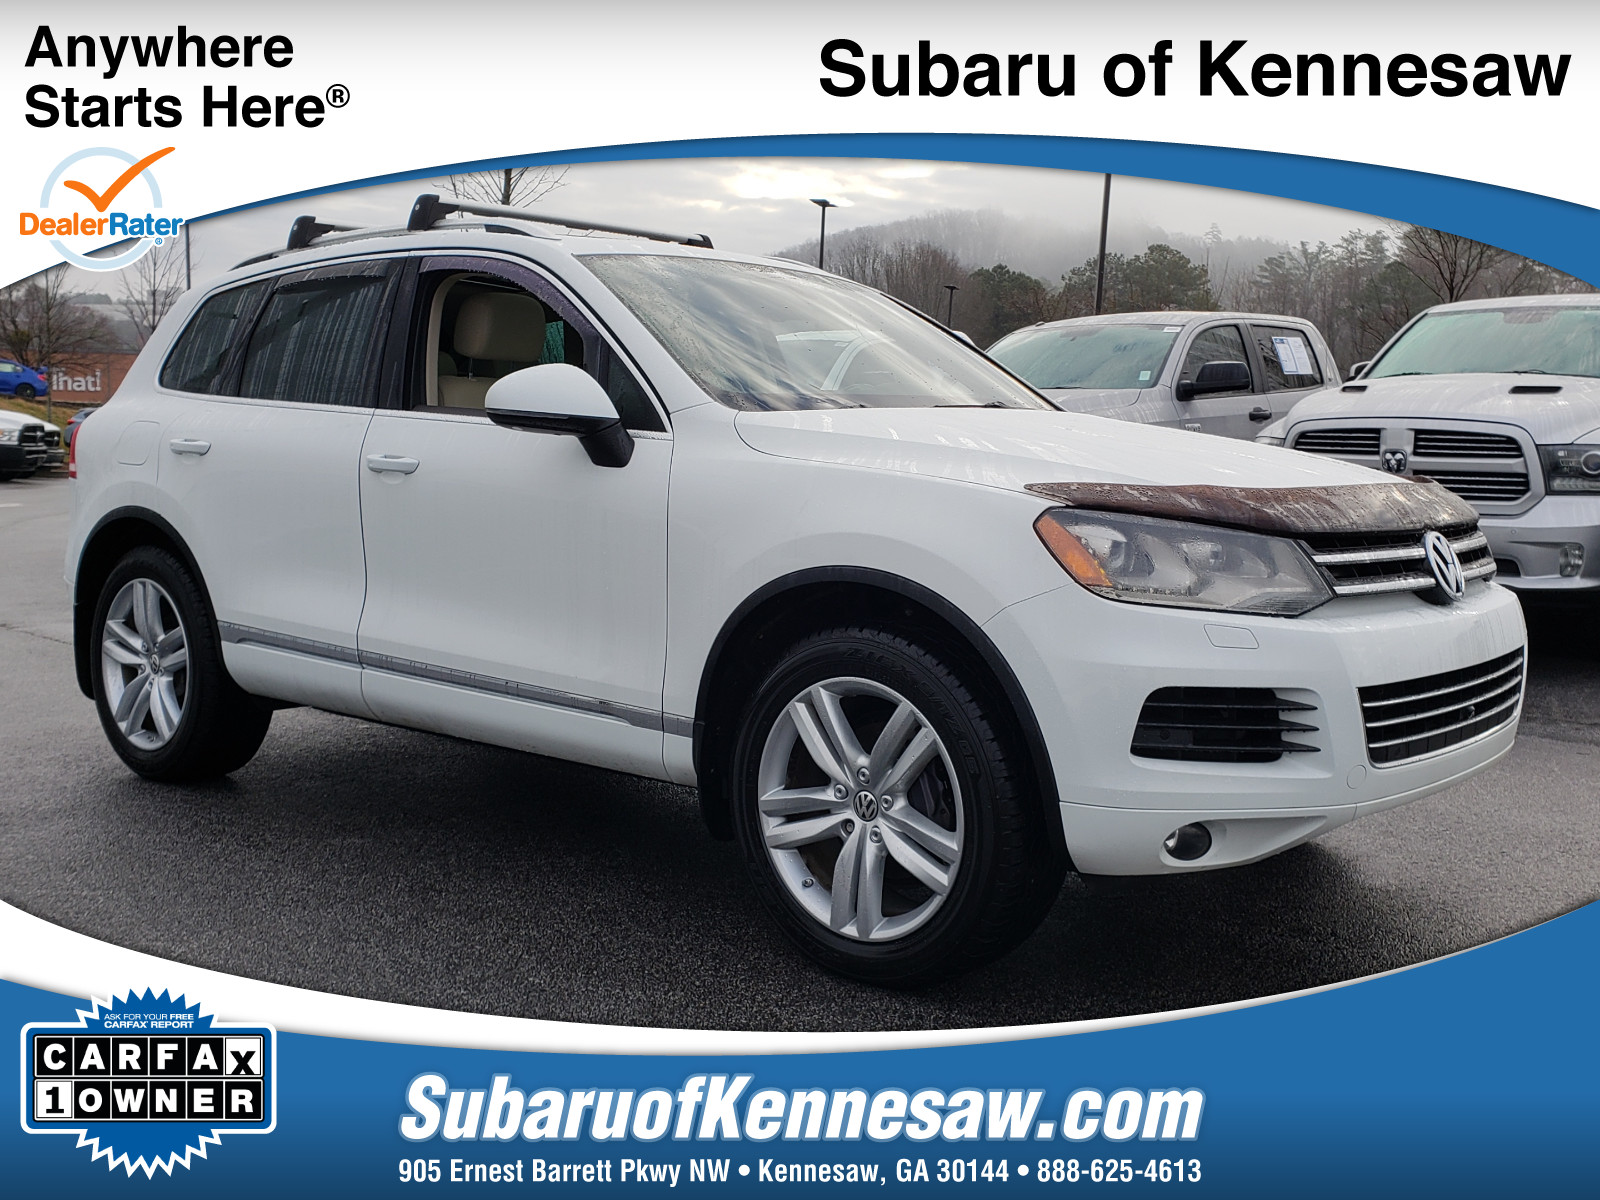 Free Carfax Login and Password Awesome Used 2014 Volkswagen touareg for Sale atlanta In Kennesaw